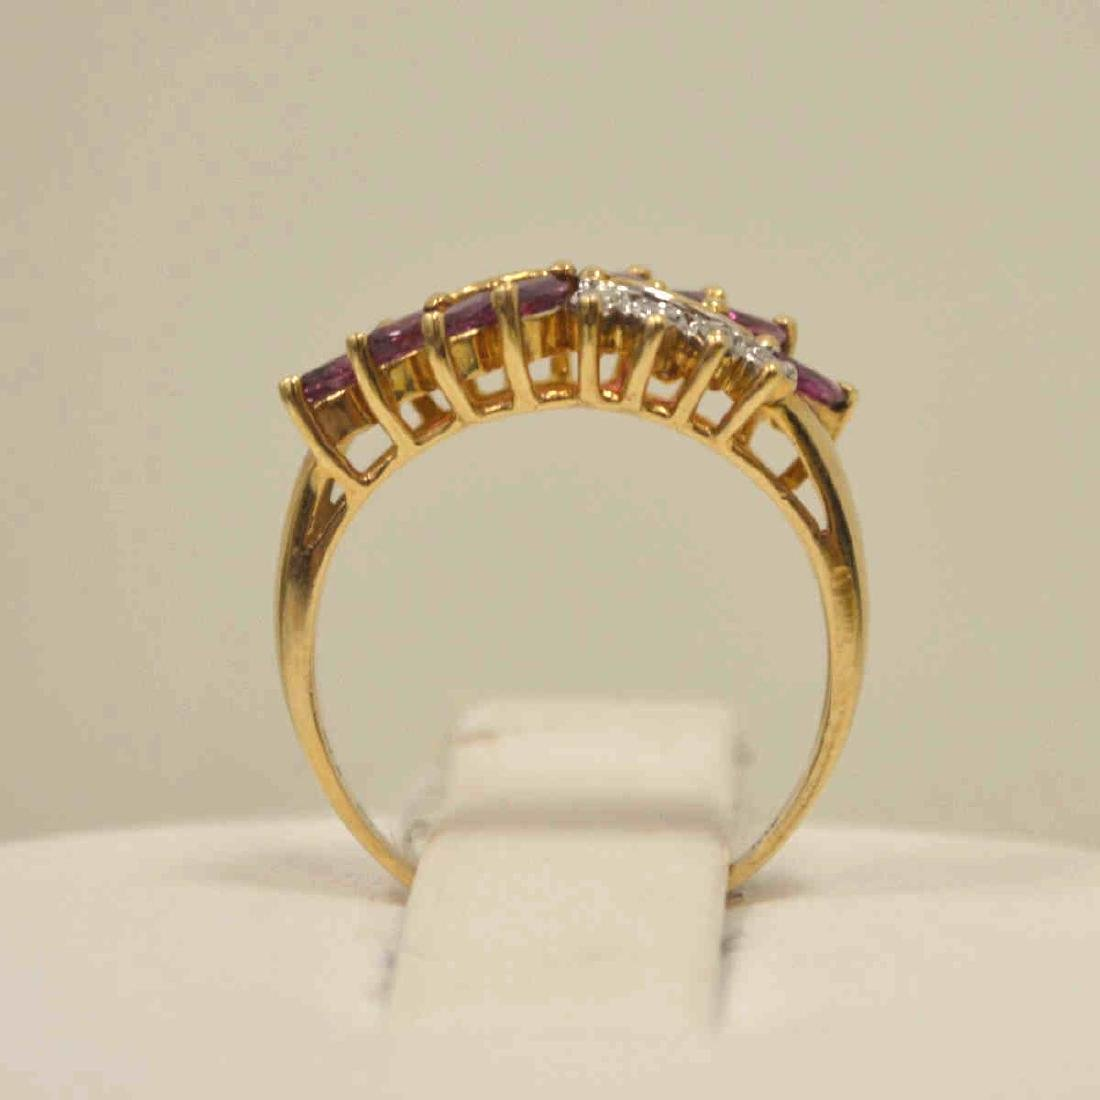 10kt yellow gold ruby and diamond ring - 3